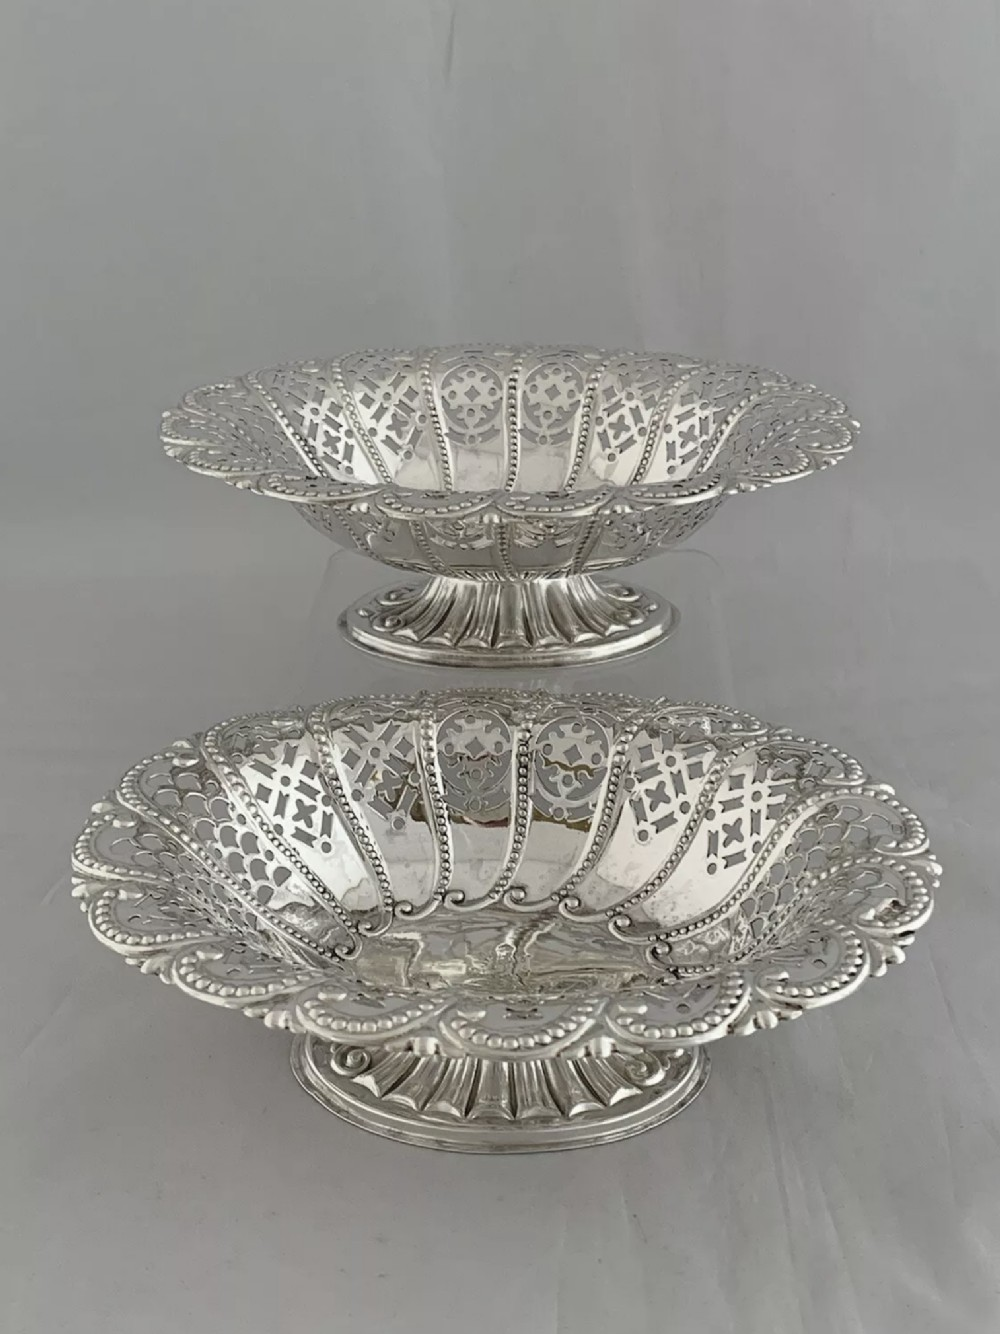 victorian antique silver bon bon dishes 1894 sheffield de tout mon coeur bowls